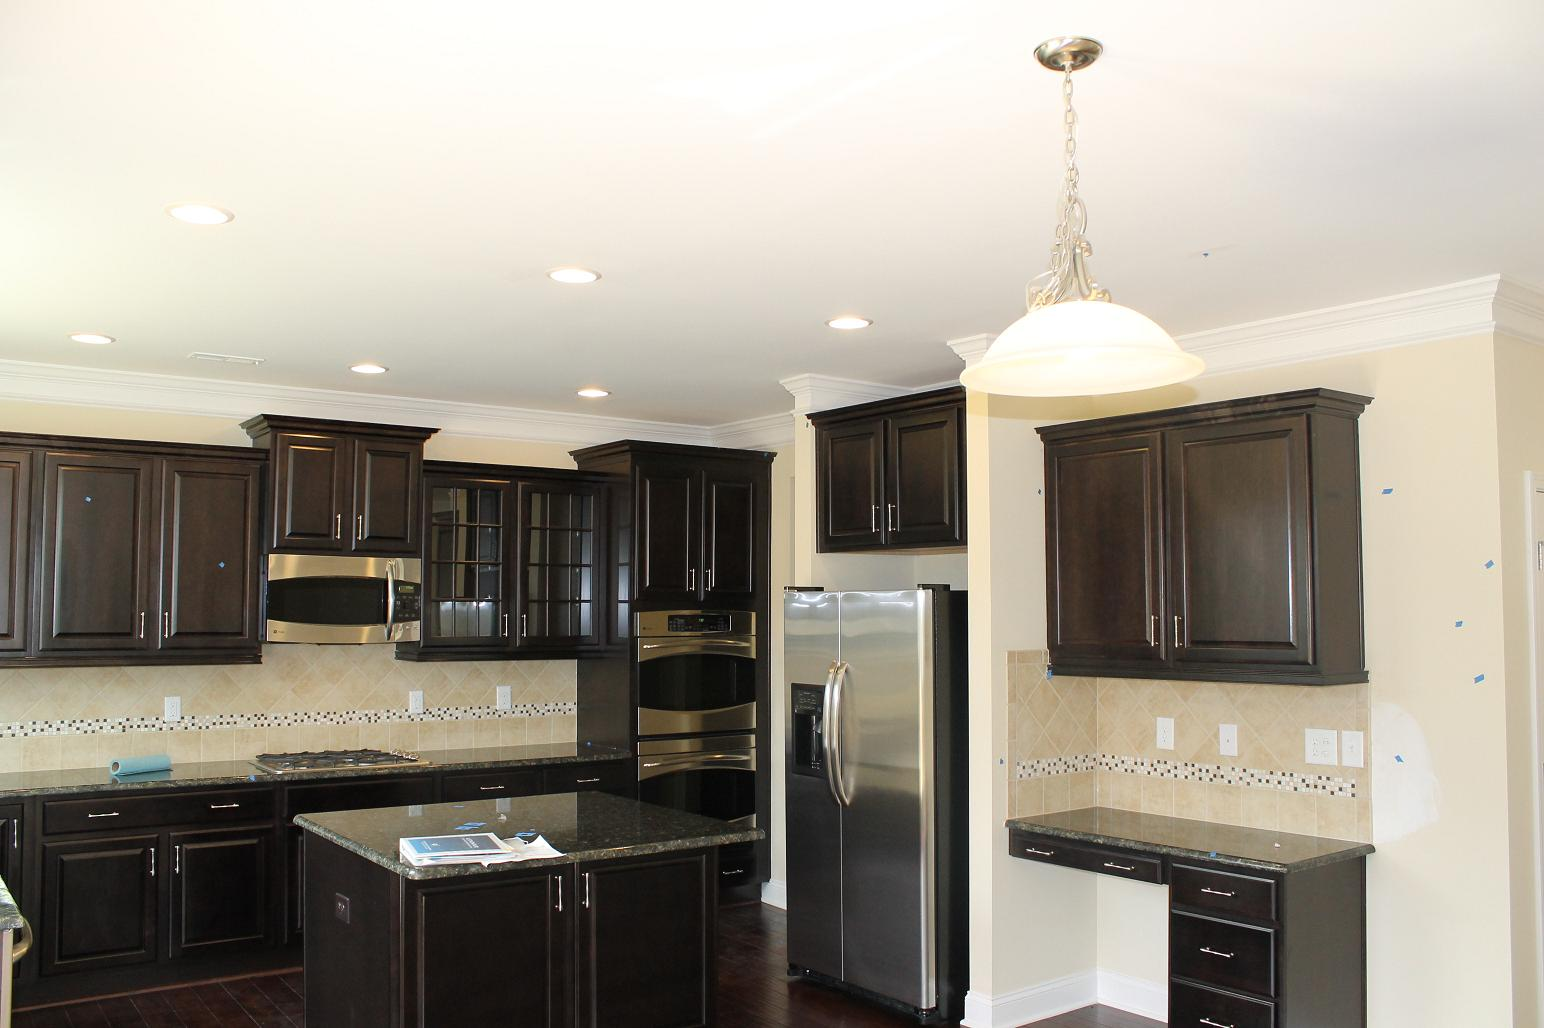 Granite vs. quartz countertops...which is better? - Raleigh ...